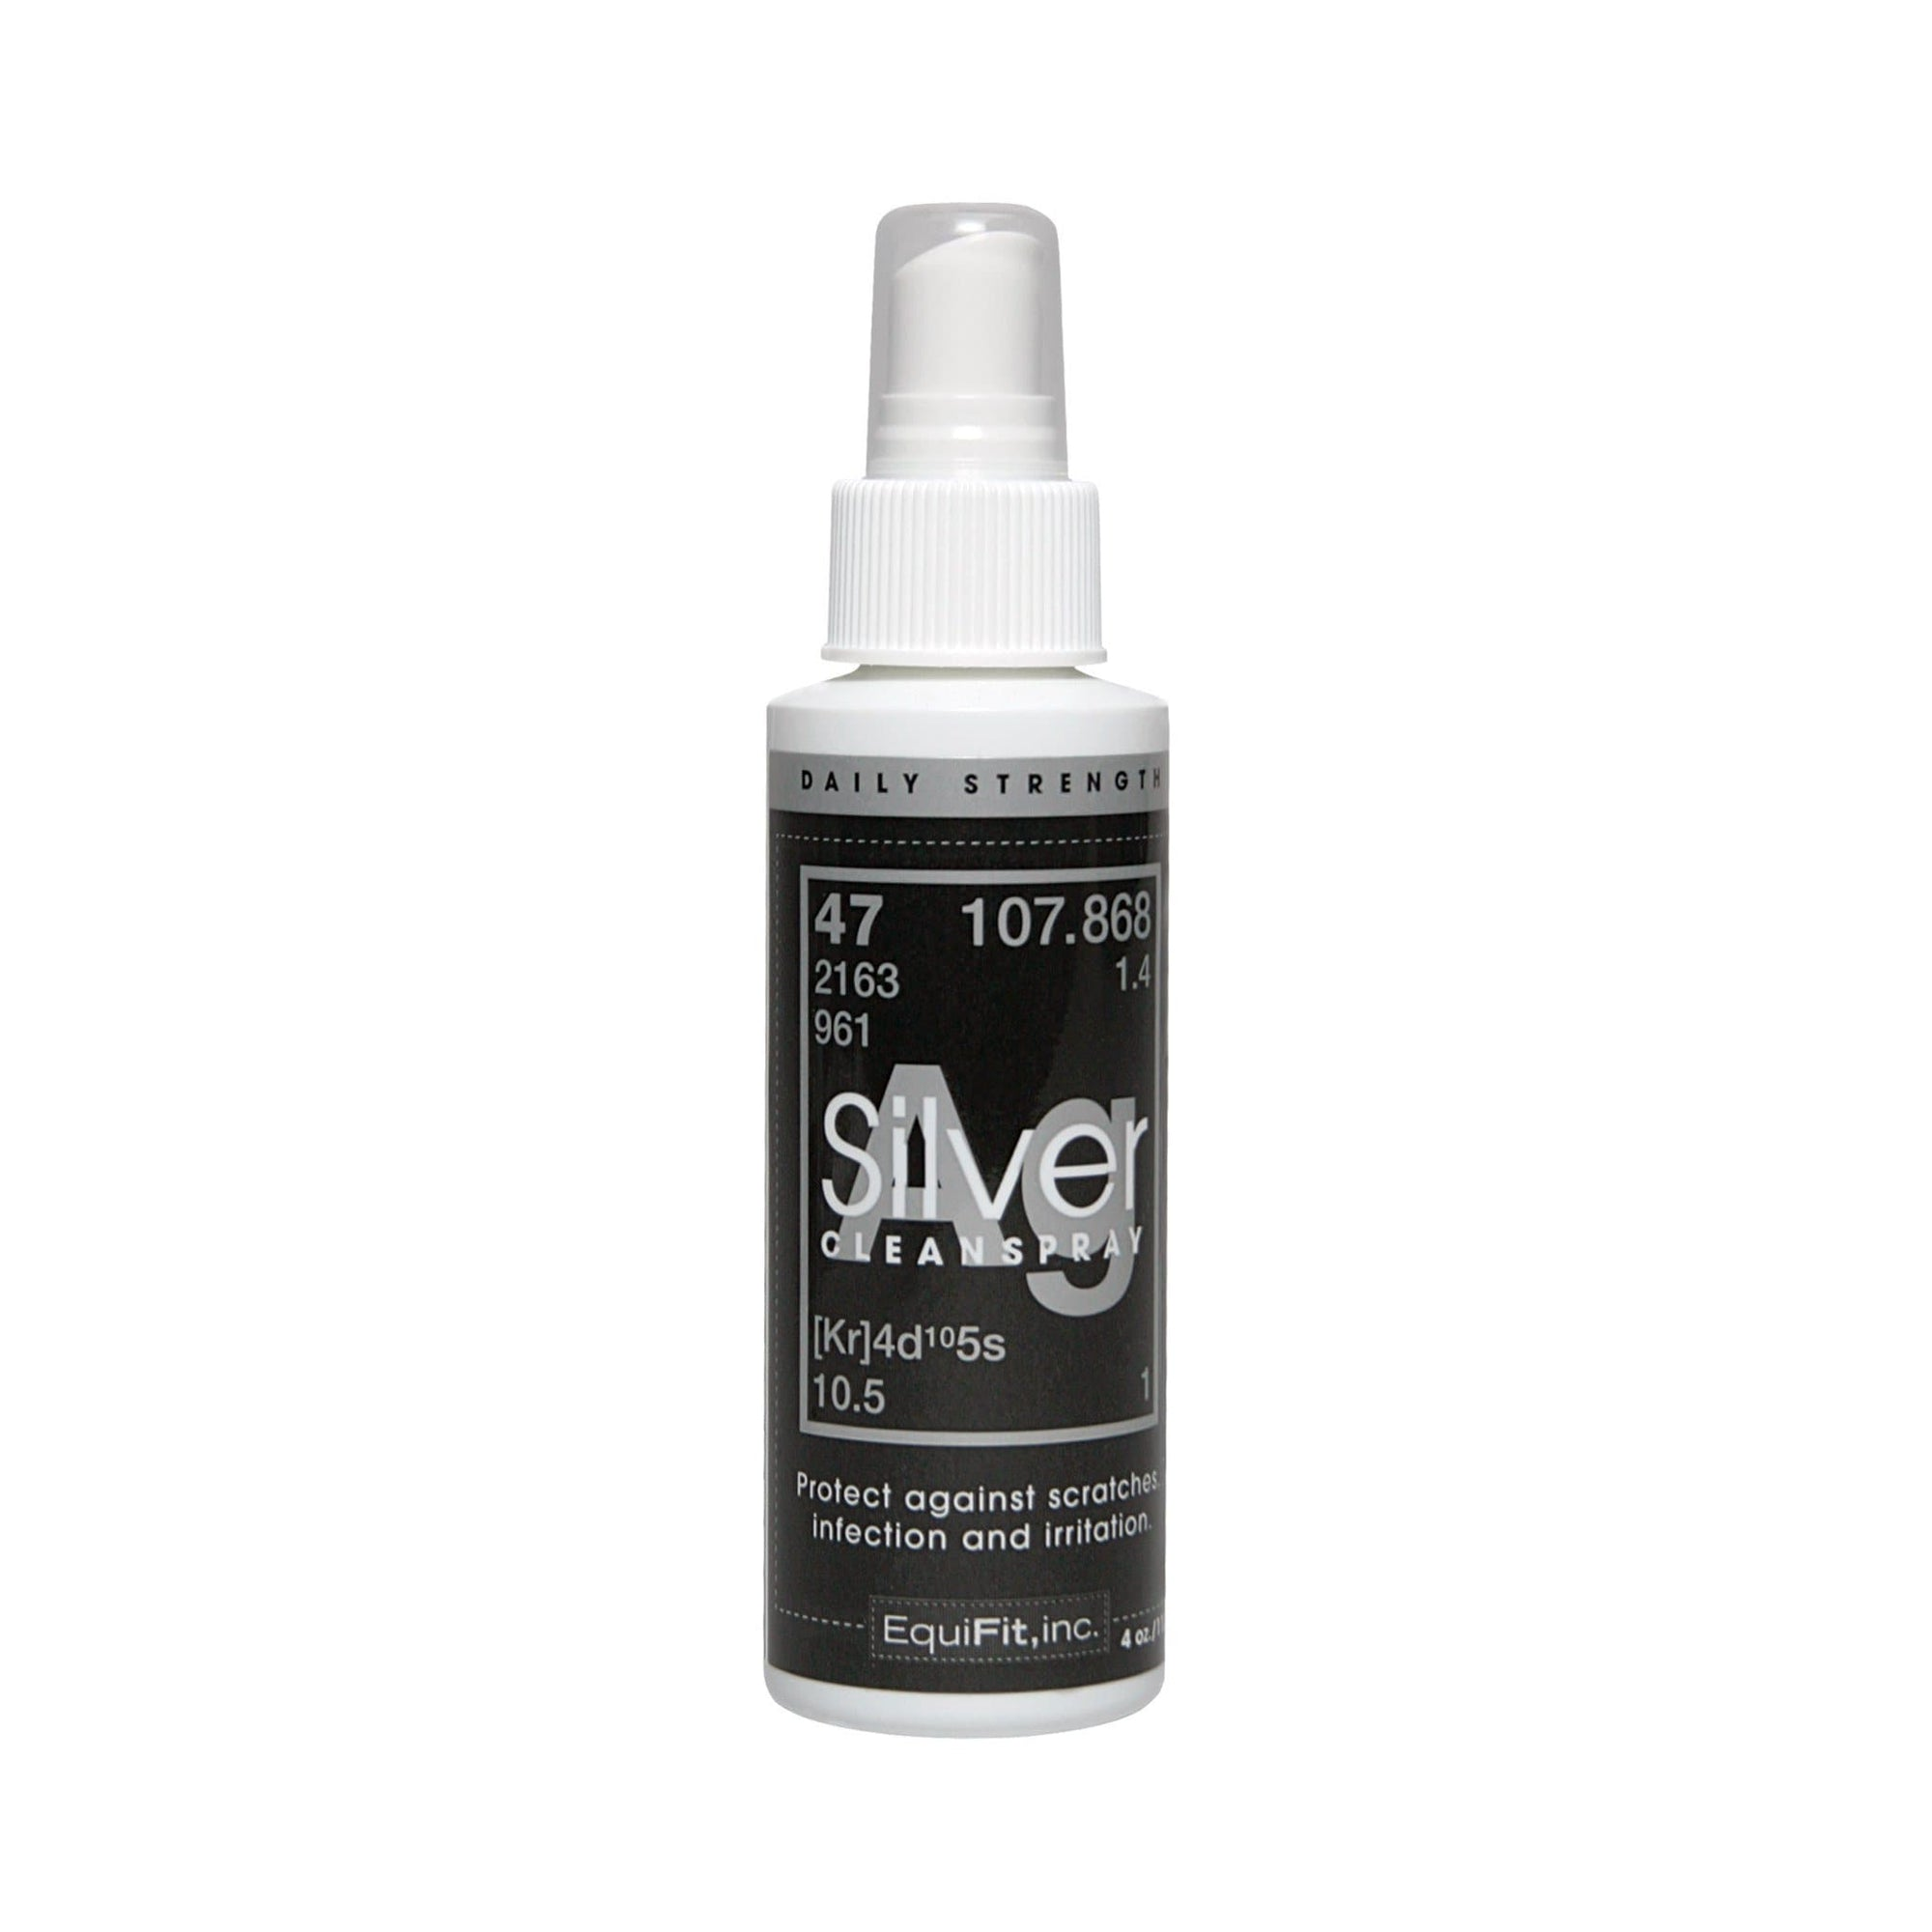 AgSilver Daily Strength WoundSpray™